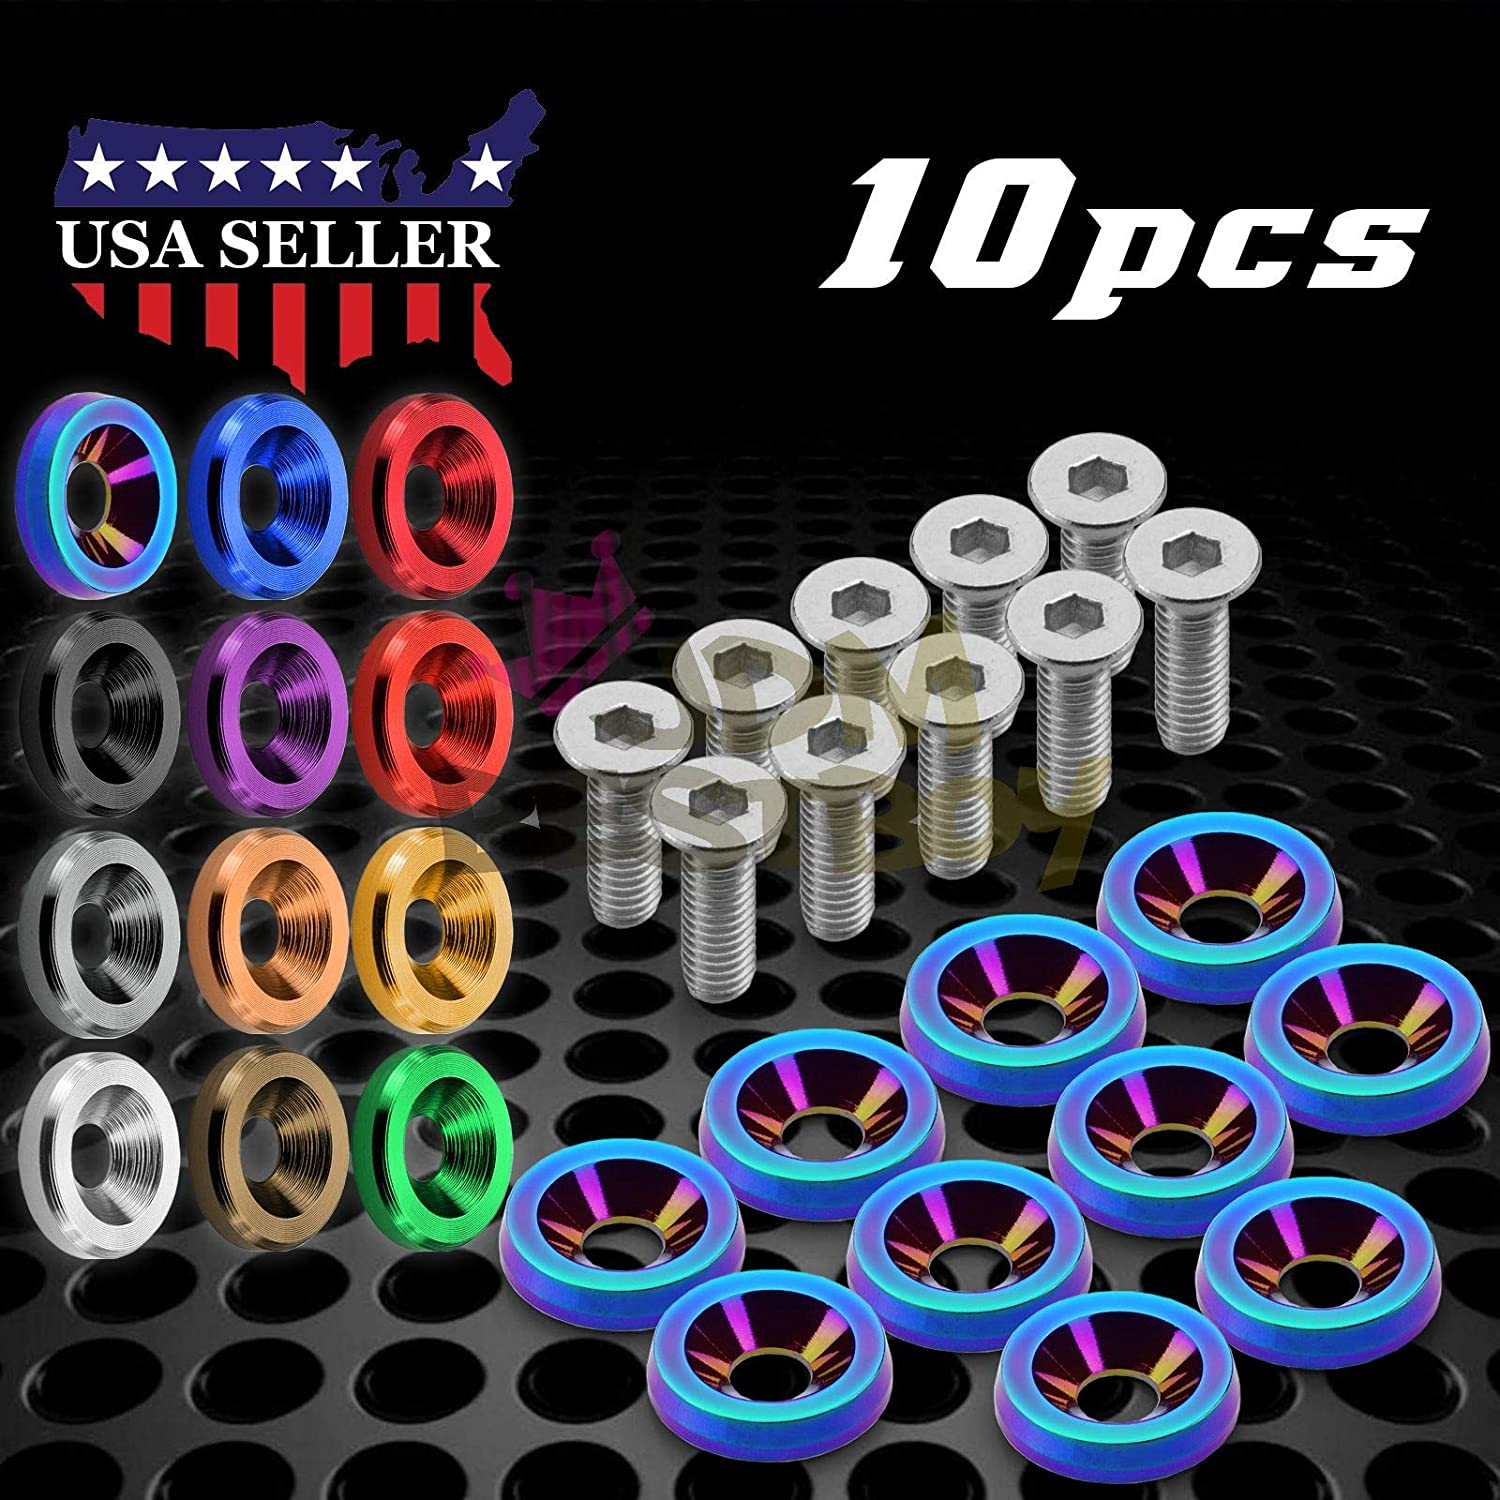 iJDMTOY 4 JDM Racing Style Gold Aluminum Washers Bolts Kit for Car License Plate Frame, Fender, Bumper, Engine Bay, etc